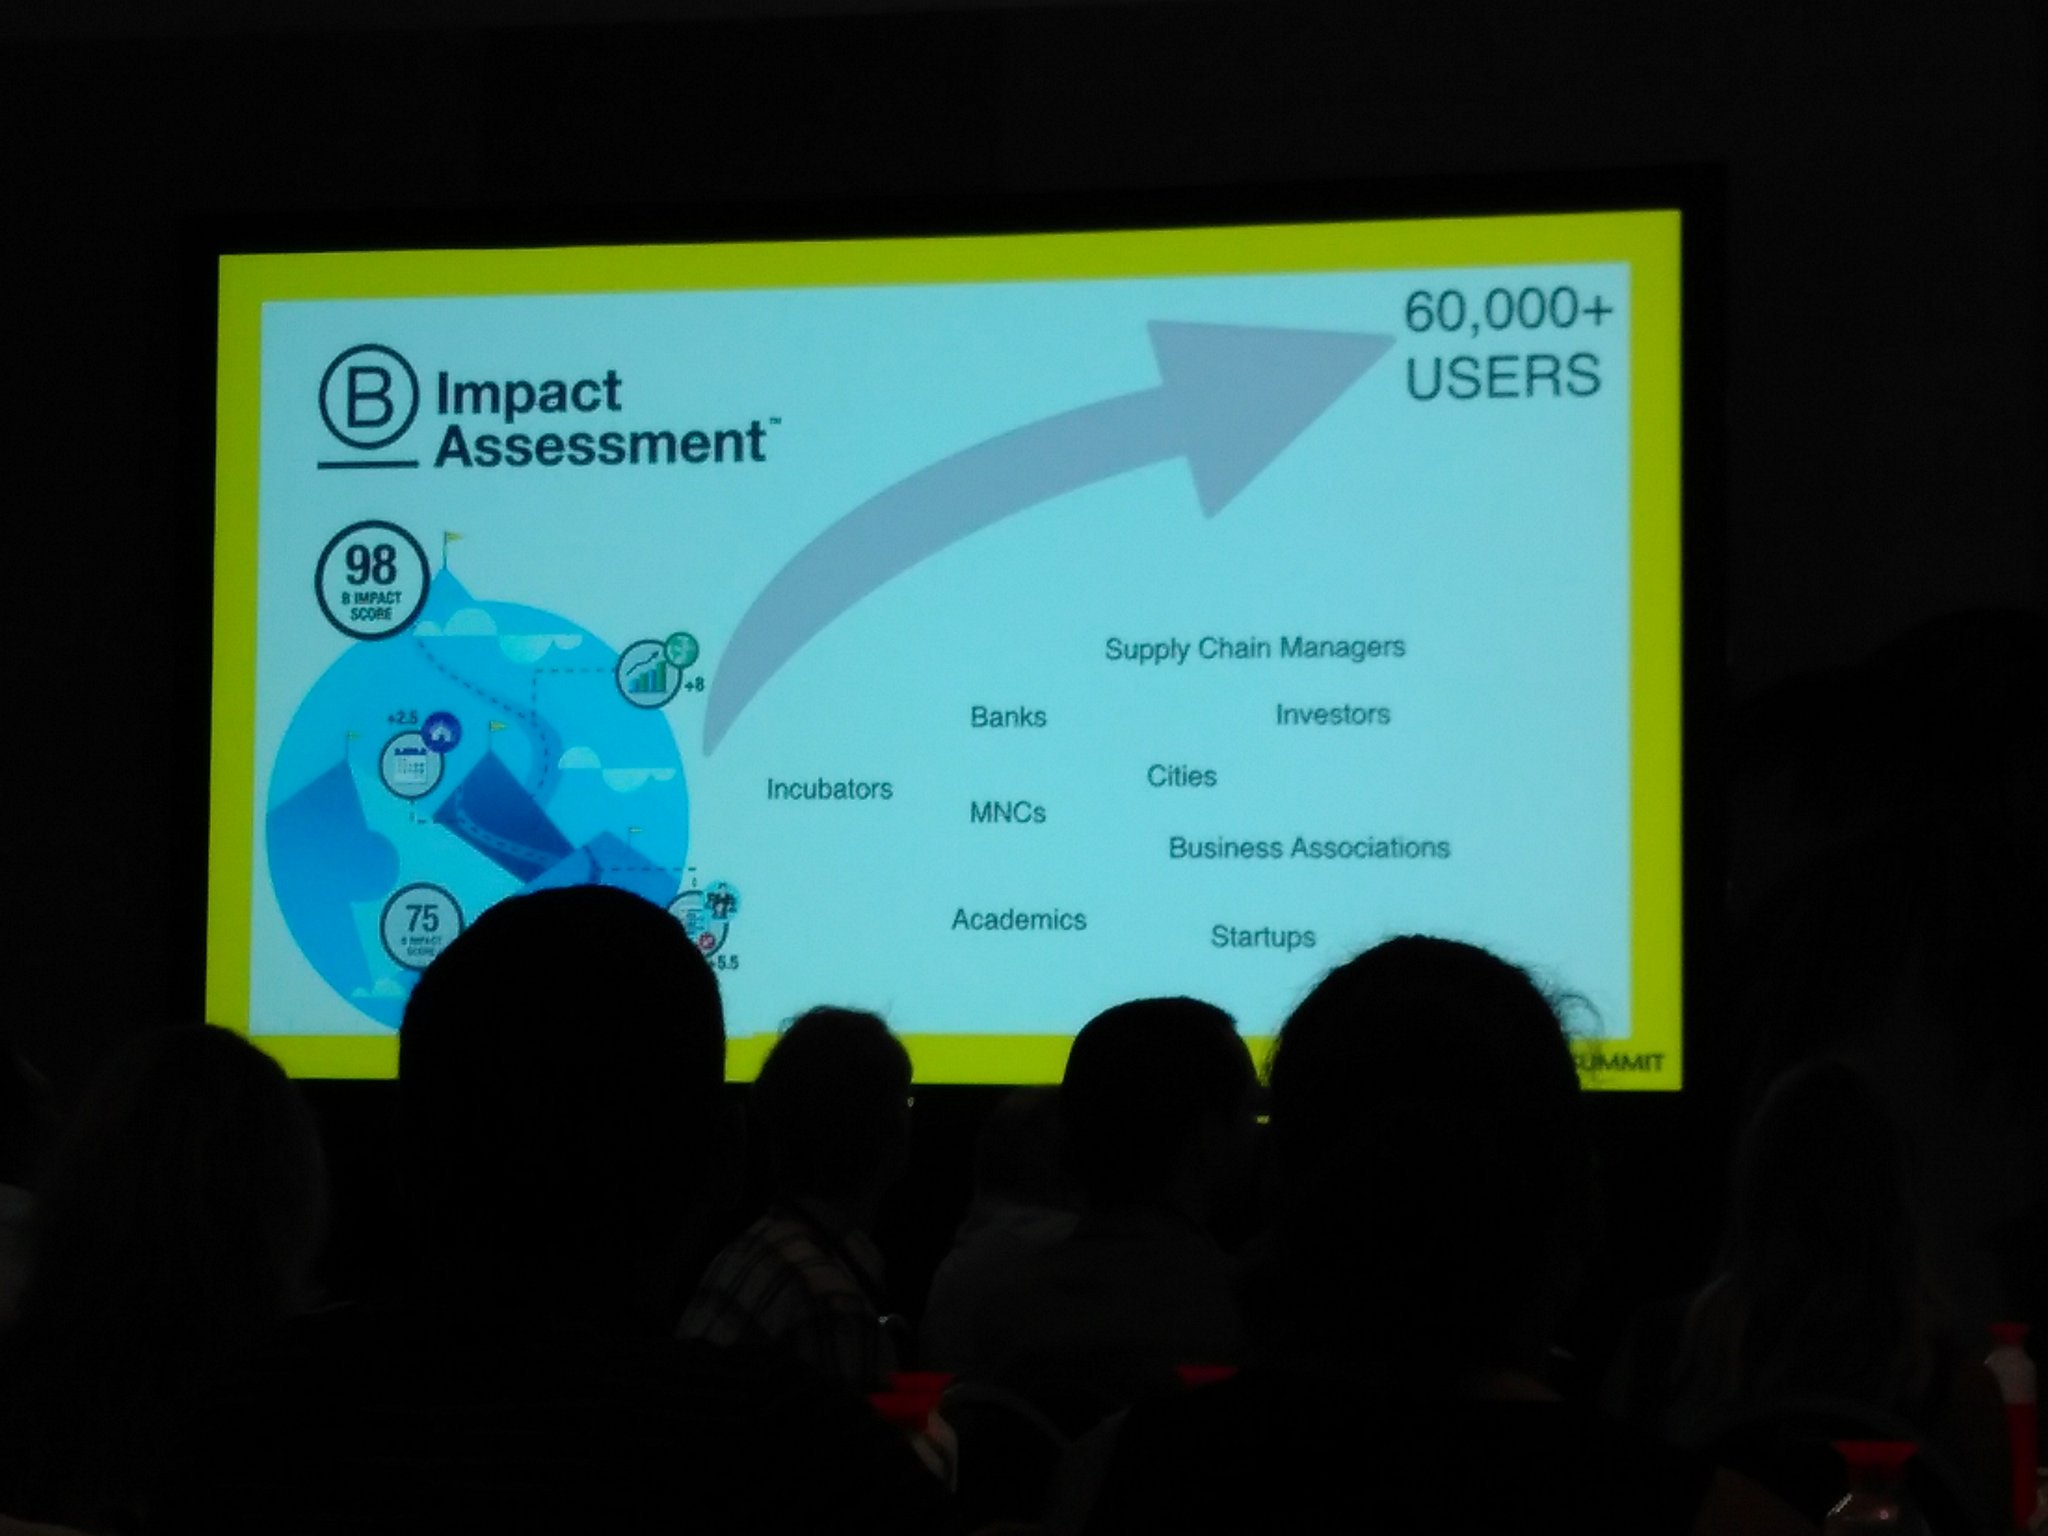 Already 60 000 users of the B impact assessment , a free tool for companies to assess their impact #Bthechange #Bcorpsummit #Socialimpact https://t.co/LiCI6v7LHU